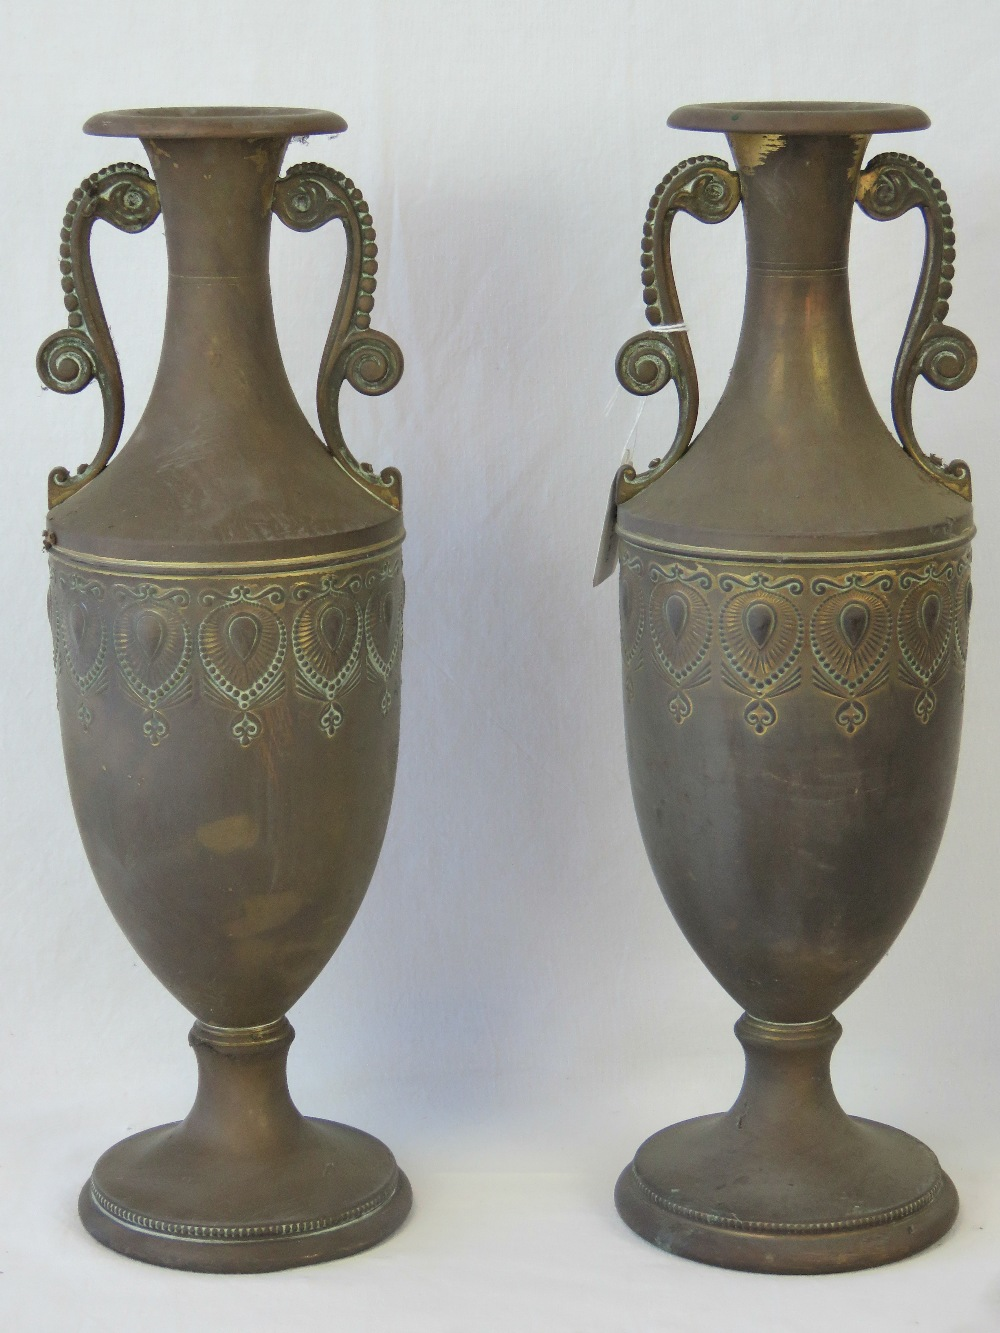 Lot 553 - A pair of 20th century brass vases of Ro